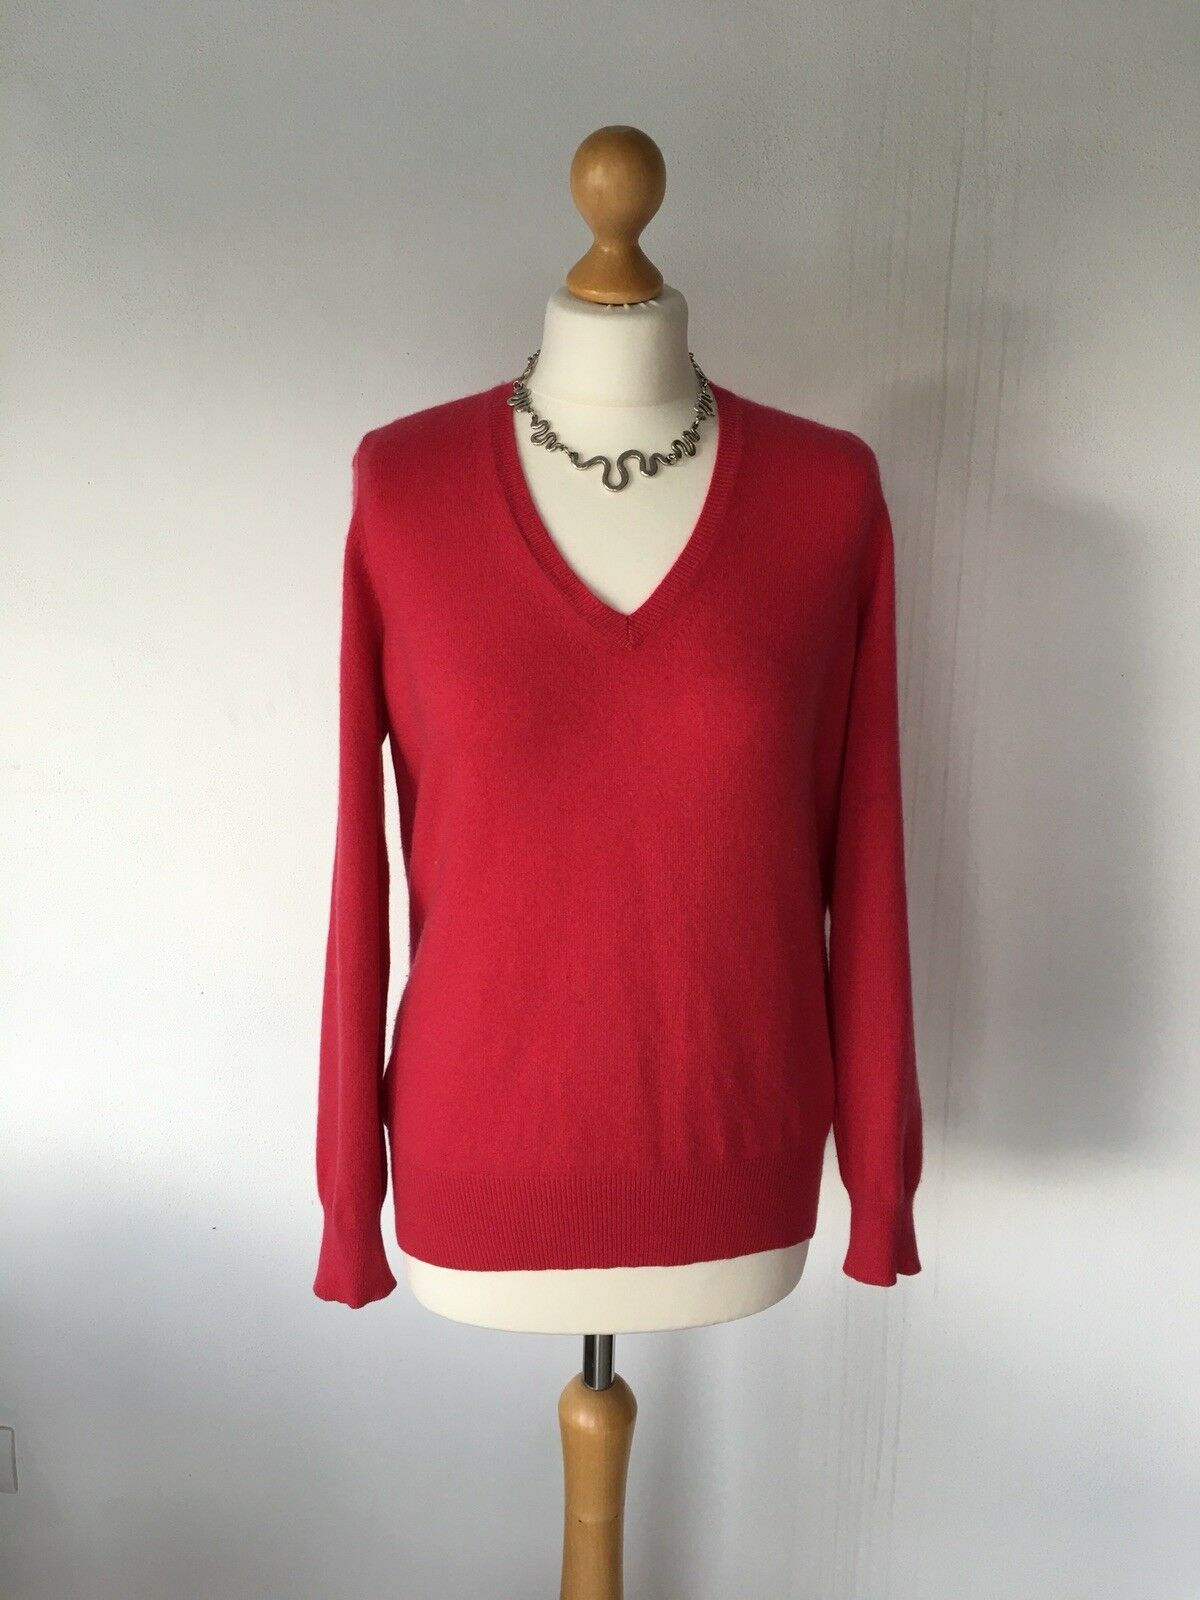 M & S Marks and Spencer AUTOGRAPH hot pink 100% PURE CASHMERE jumper